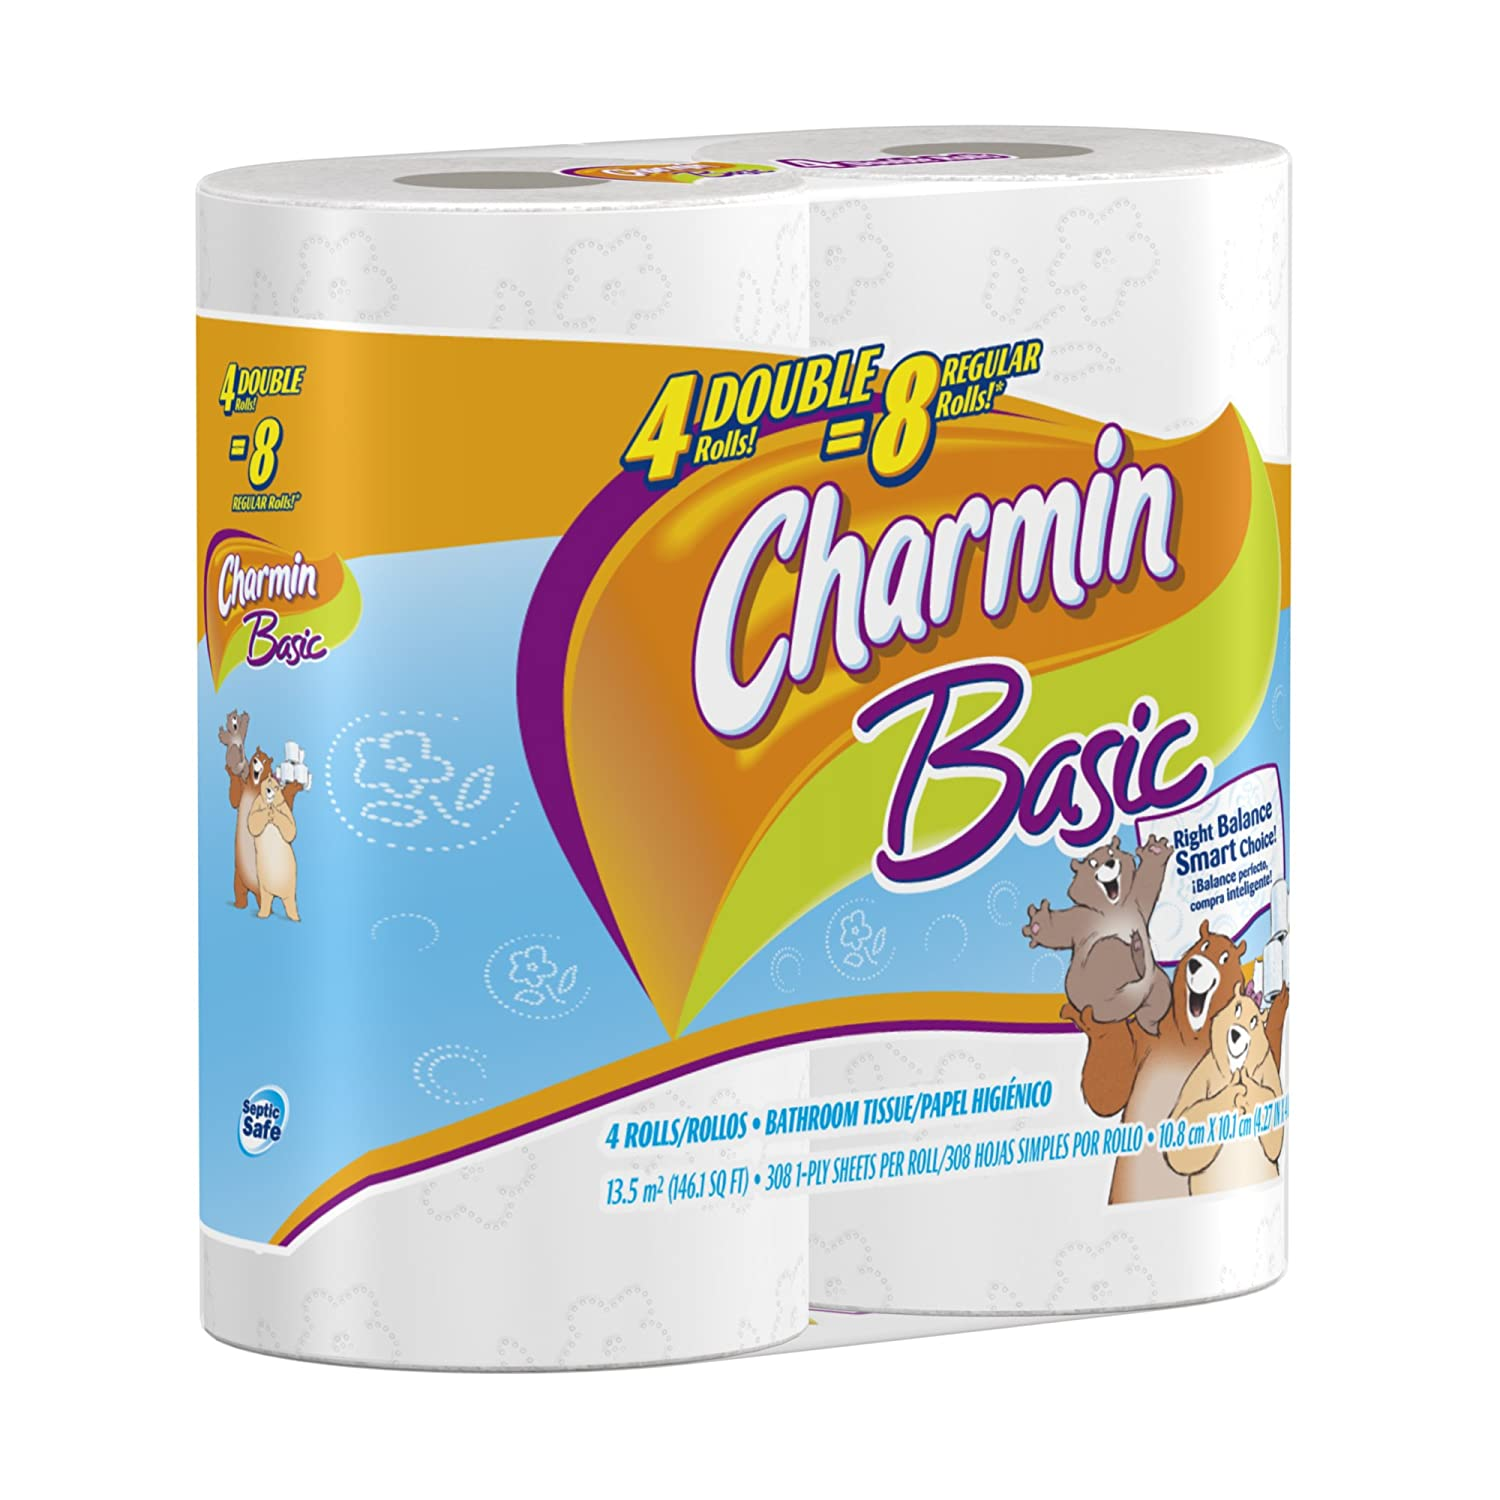 Amazon.com: Charmin Basic Toilet Paper 4 Double Rolls, (Pack of 12 ...